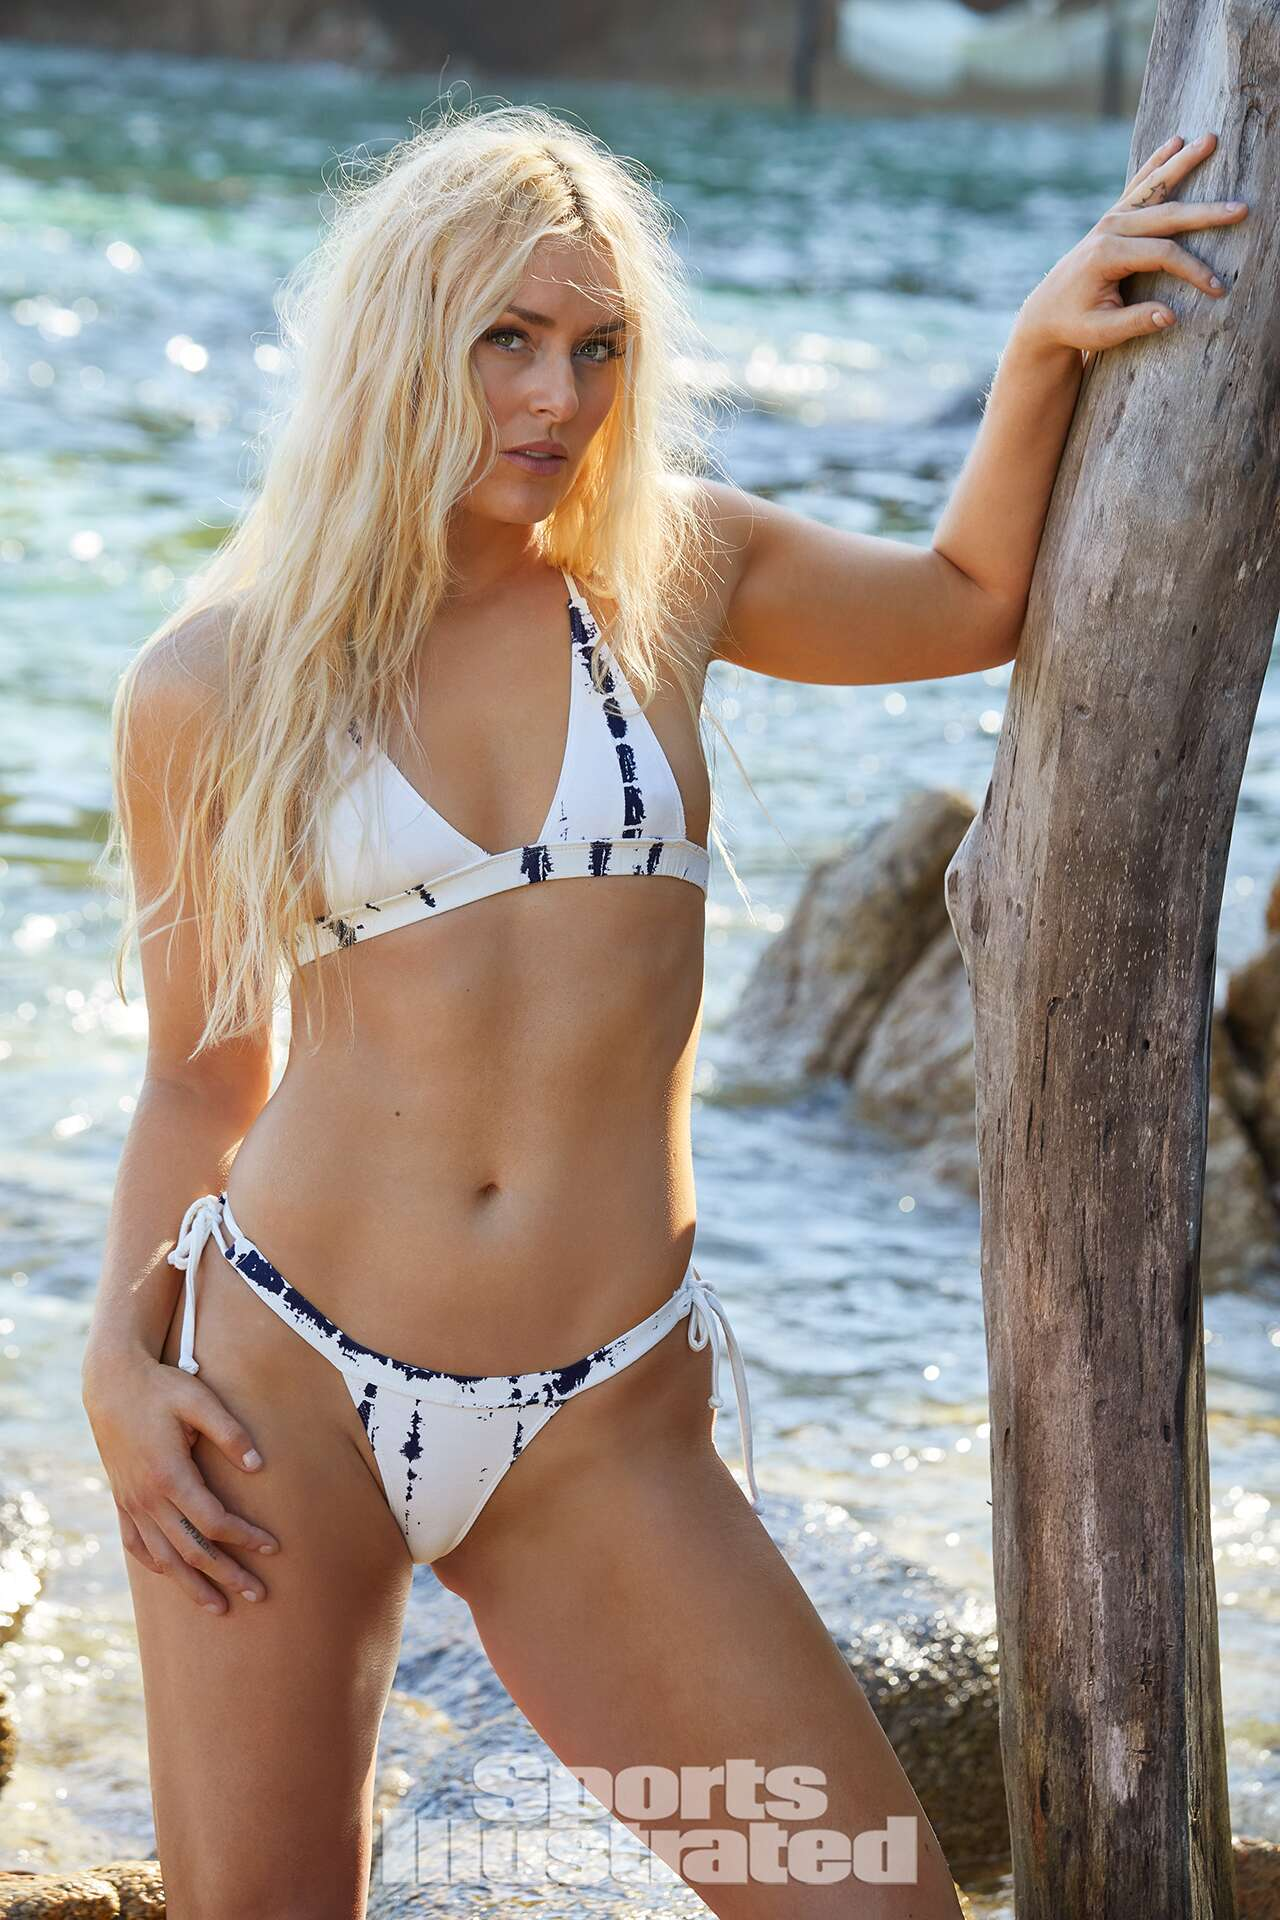 Lindsey Vonn Photos in Sports Illustrated Swimsuit 2019 | SI.com